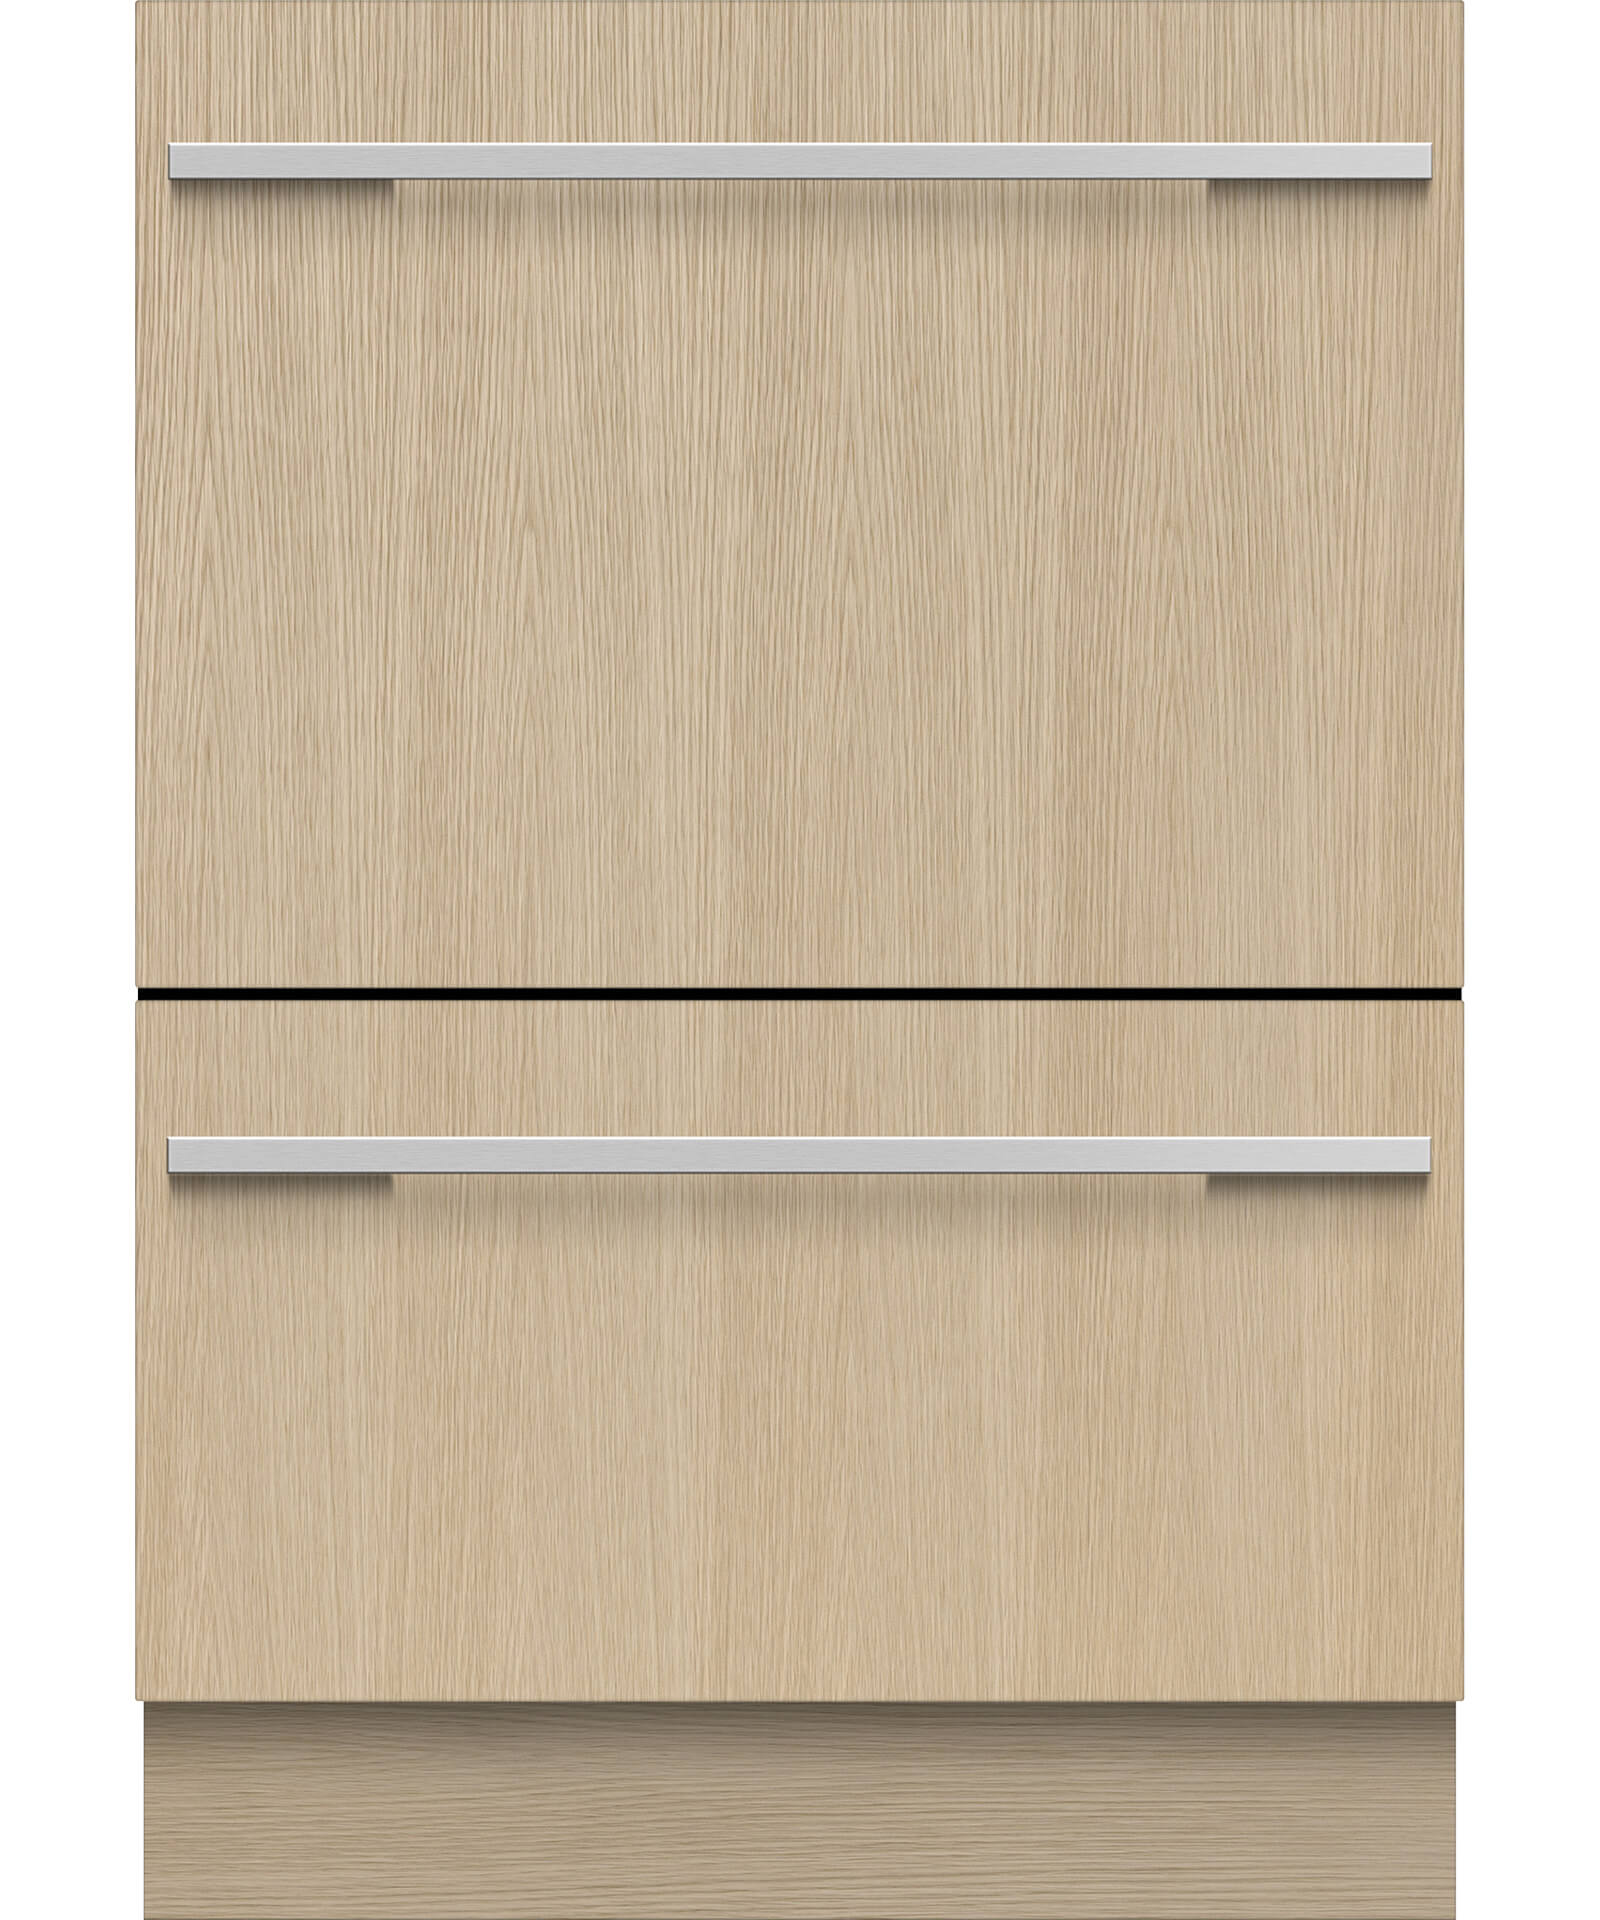 DD24DHTI9_N - Tall Panel Ready Double DishDrawer™ Dishwasher incl Sanitize, Extra Dry, full flex racking and water softener - 81216